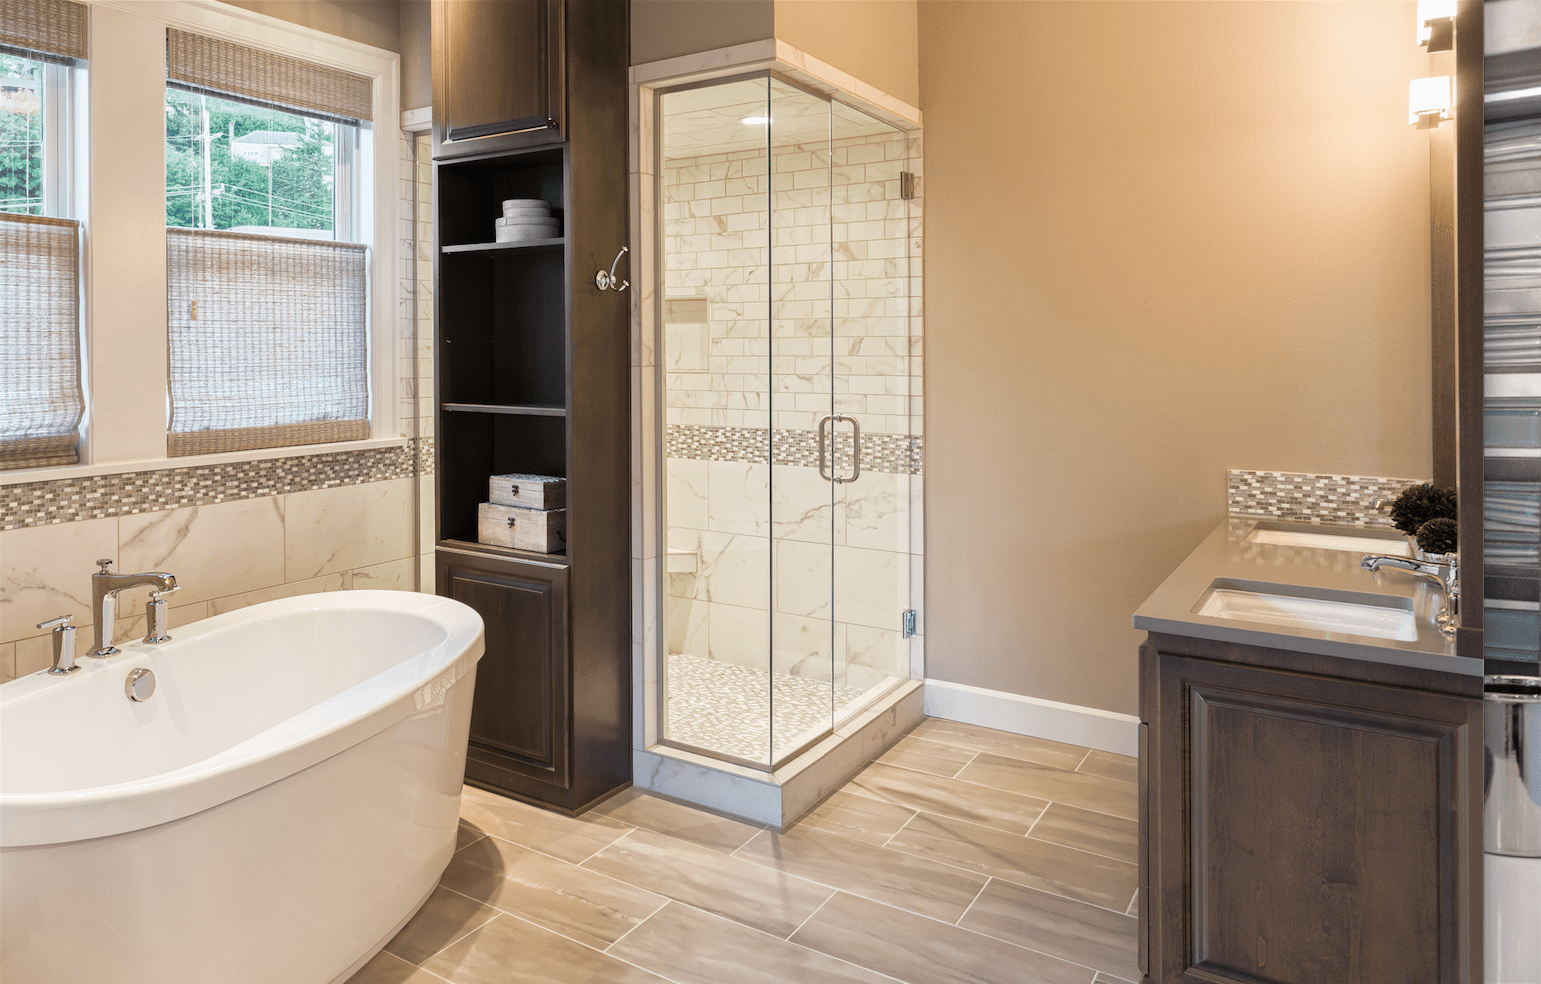 What You Should Know Before Beginning Your Bathroom Remodel - Image 1